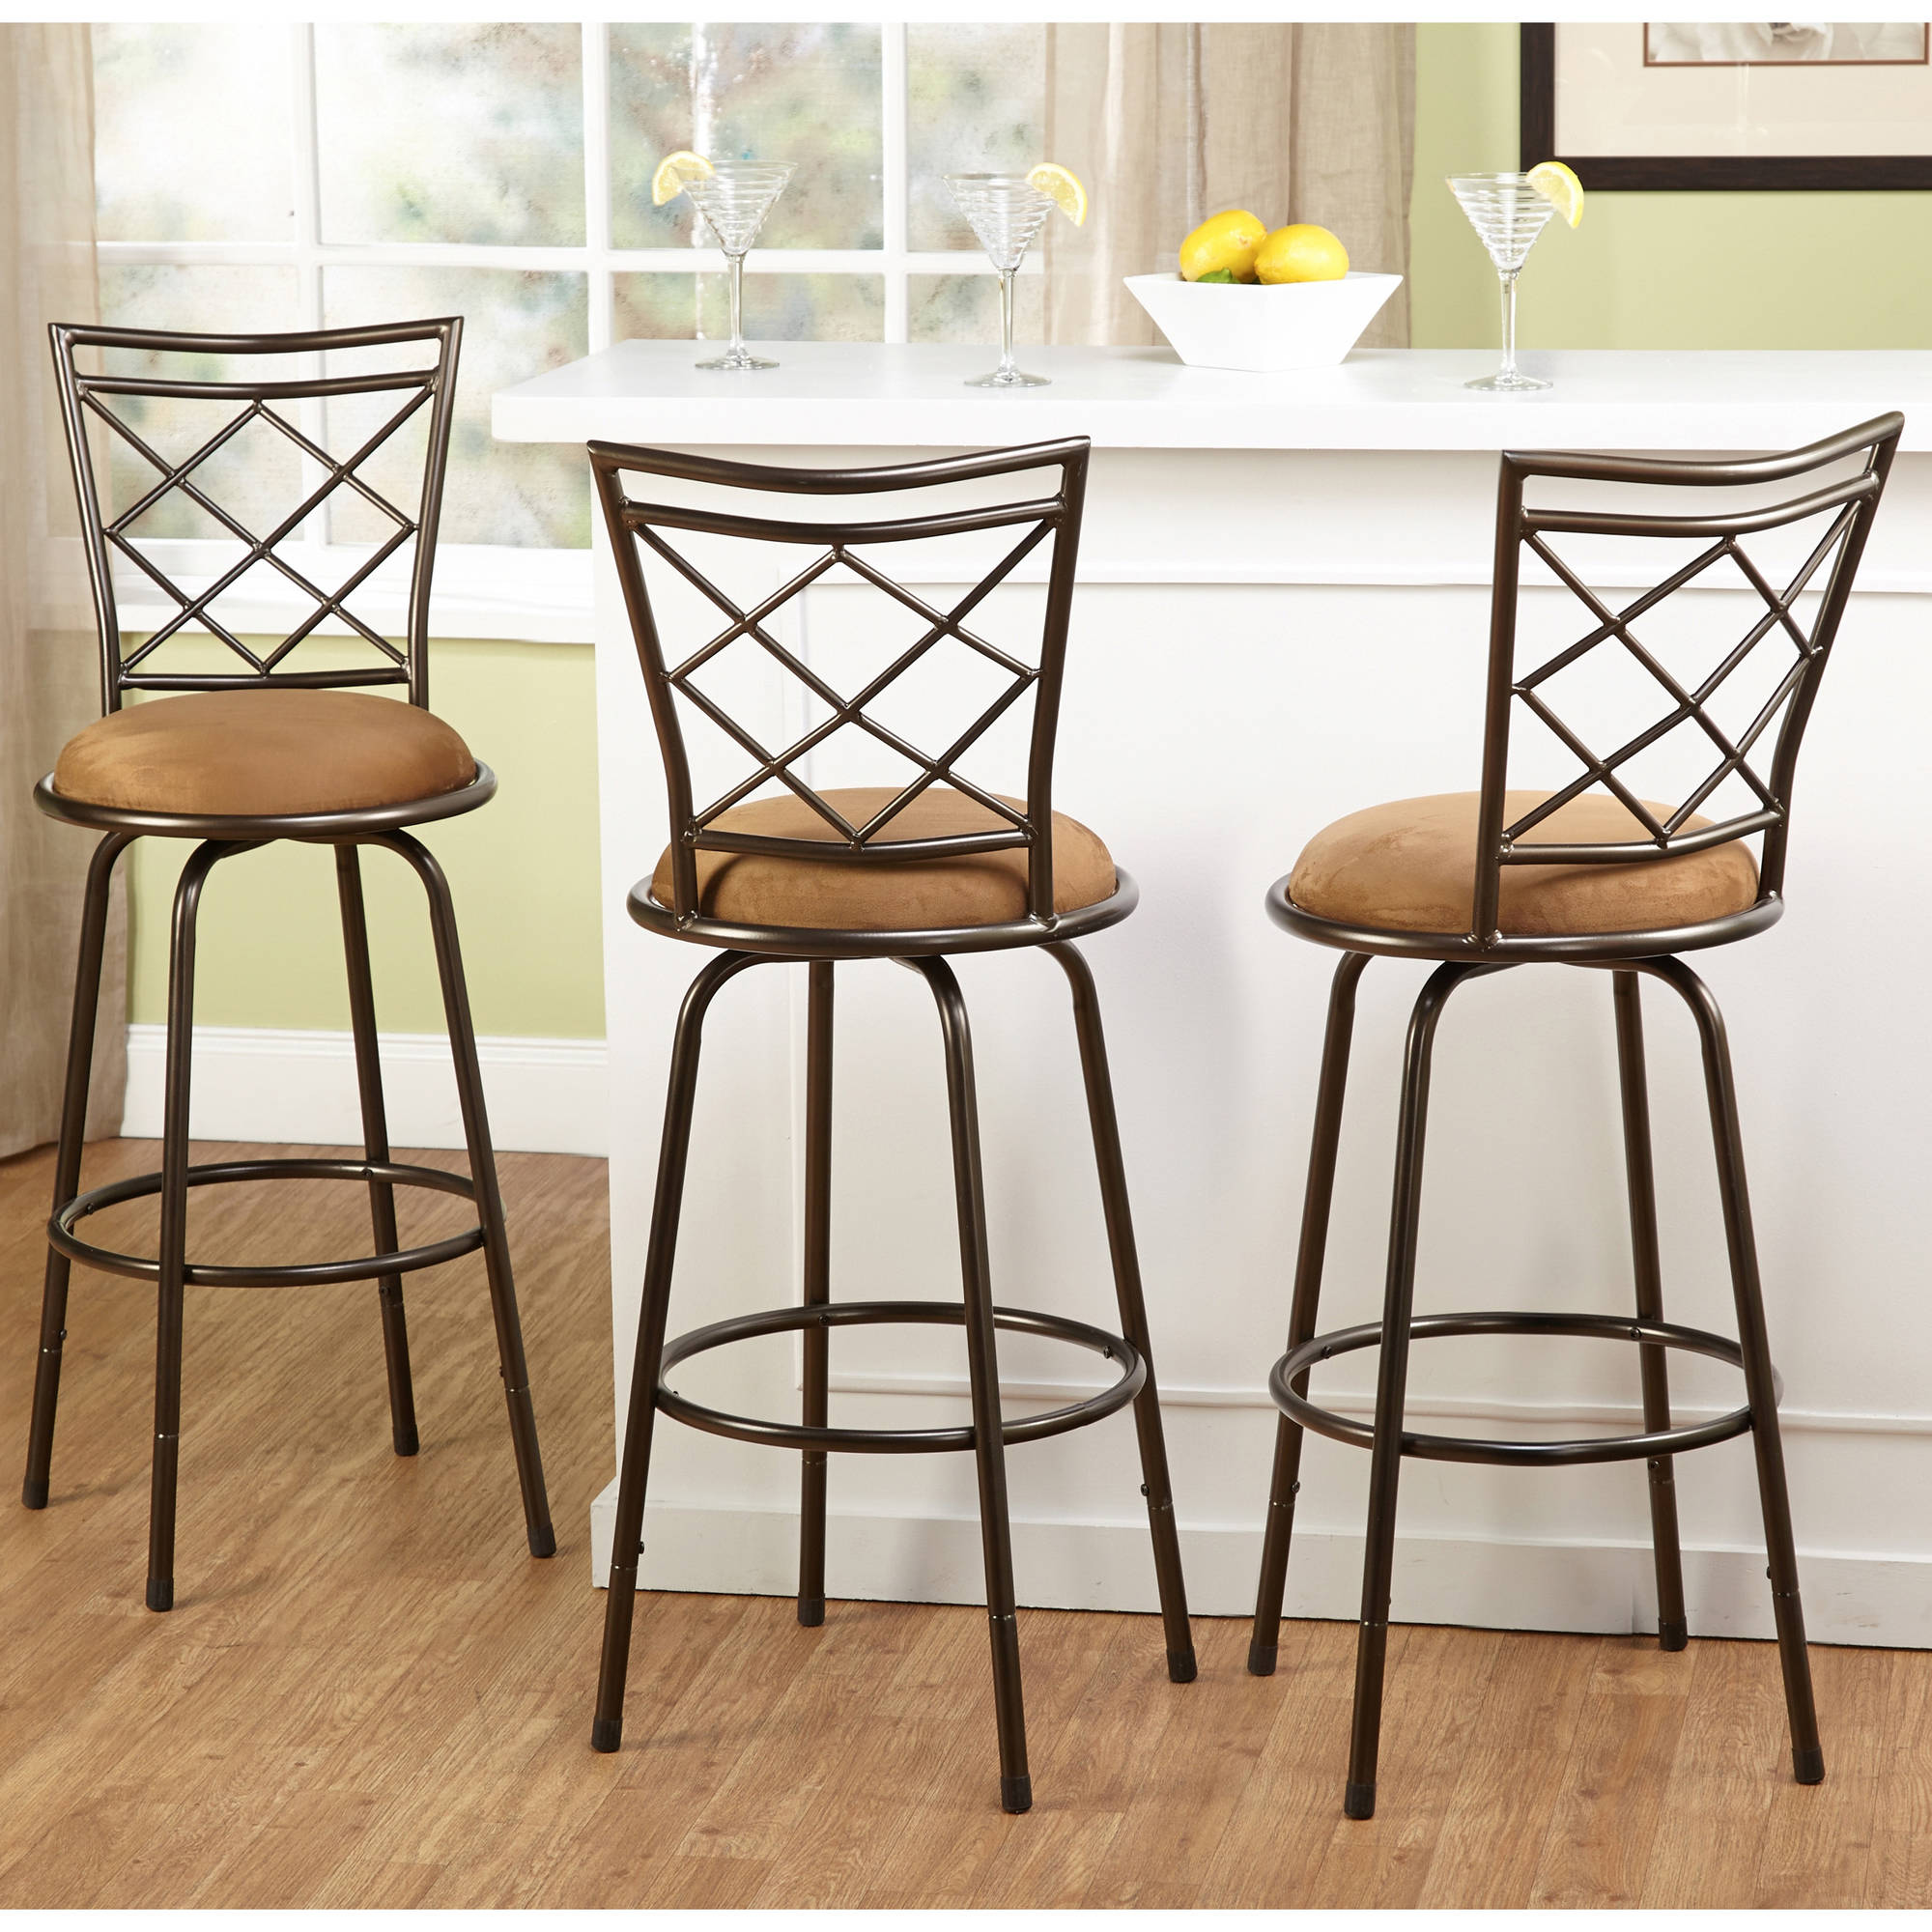 Enjoyable Tms Avery Adjustable Height Bar Stool Multiple Colors Set Of 3 Walmart Com Unemploymentrelief Wooden Chair Designs For Living Room Unemploymentrelieforg